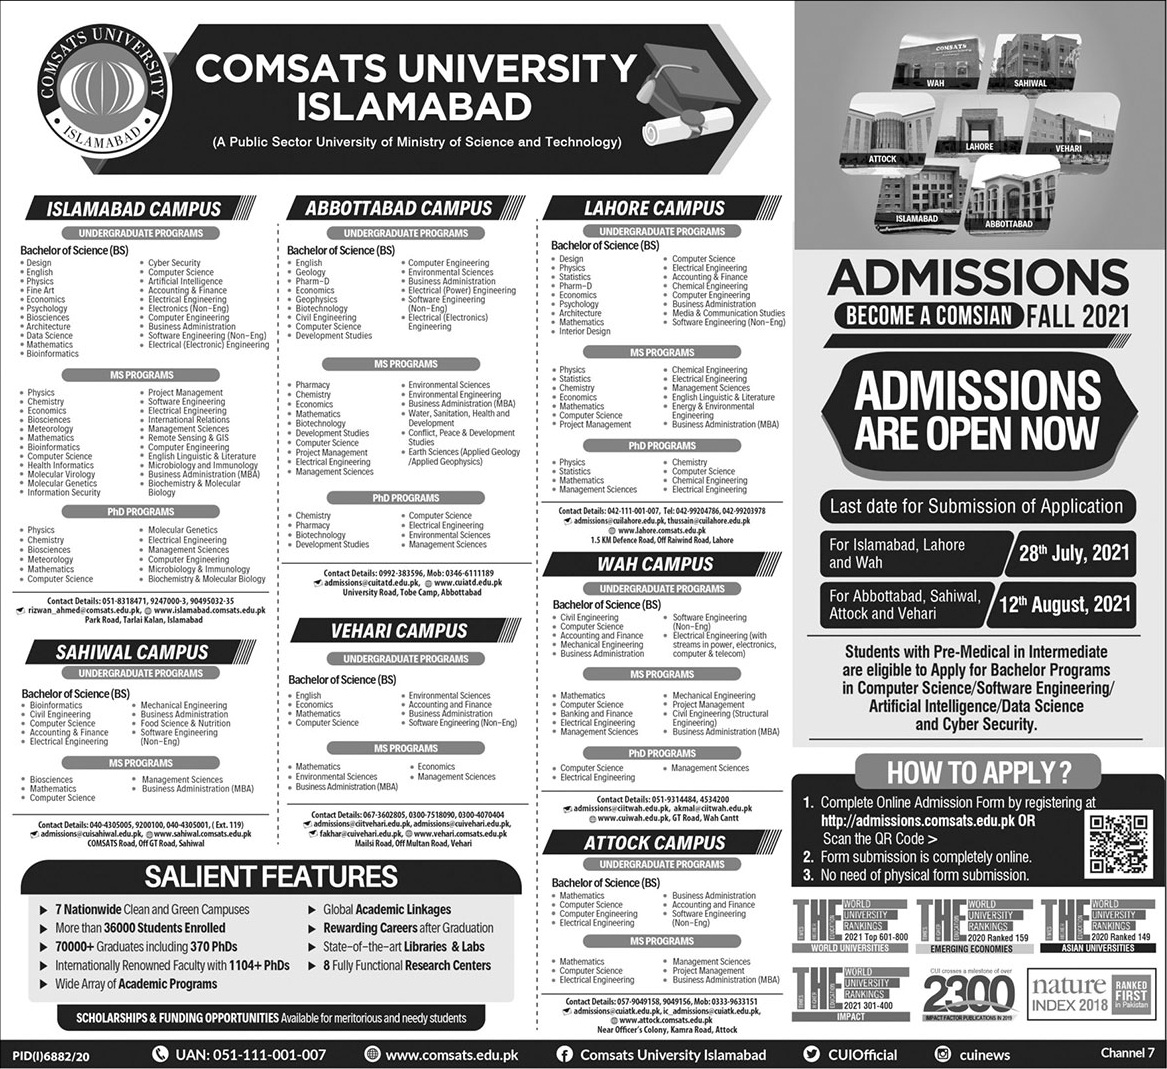 COMSAT Institute of Information Tech CIIT Islamabad Admission 2021 Application Form Eligibility Criteria Procedure